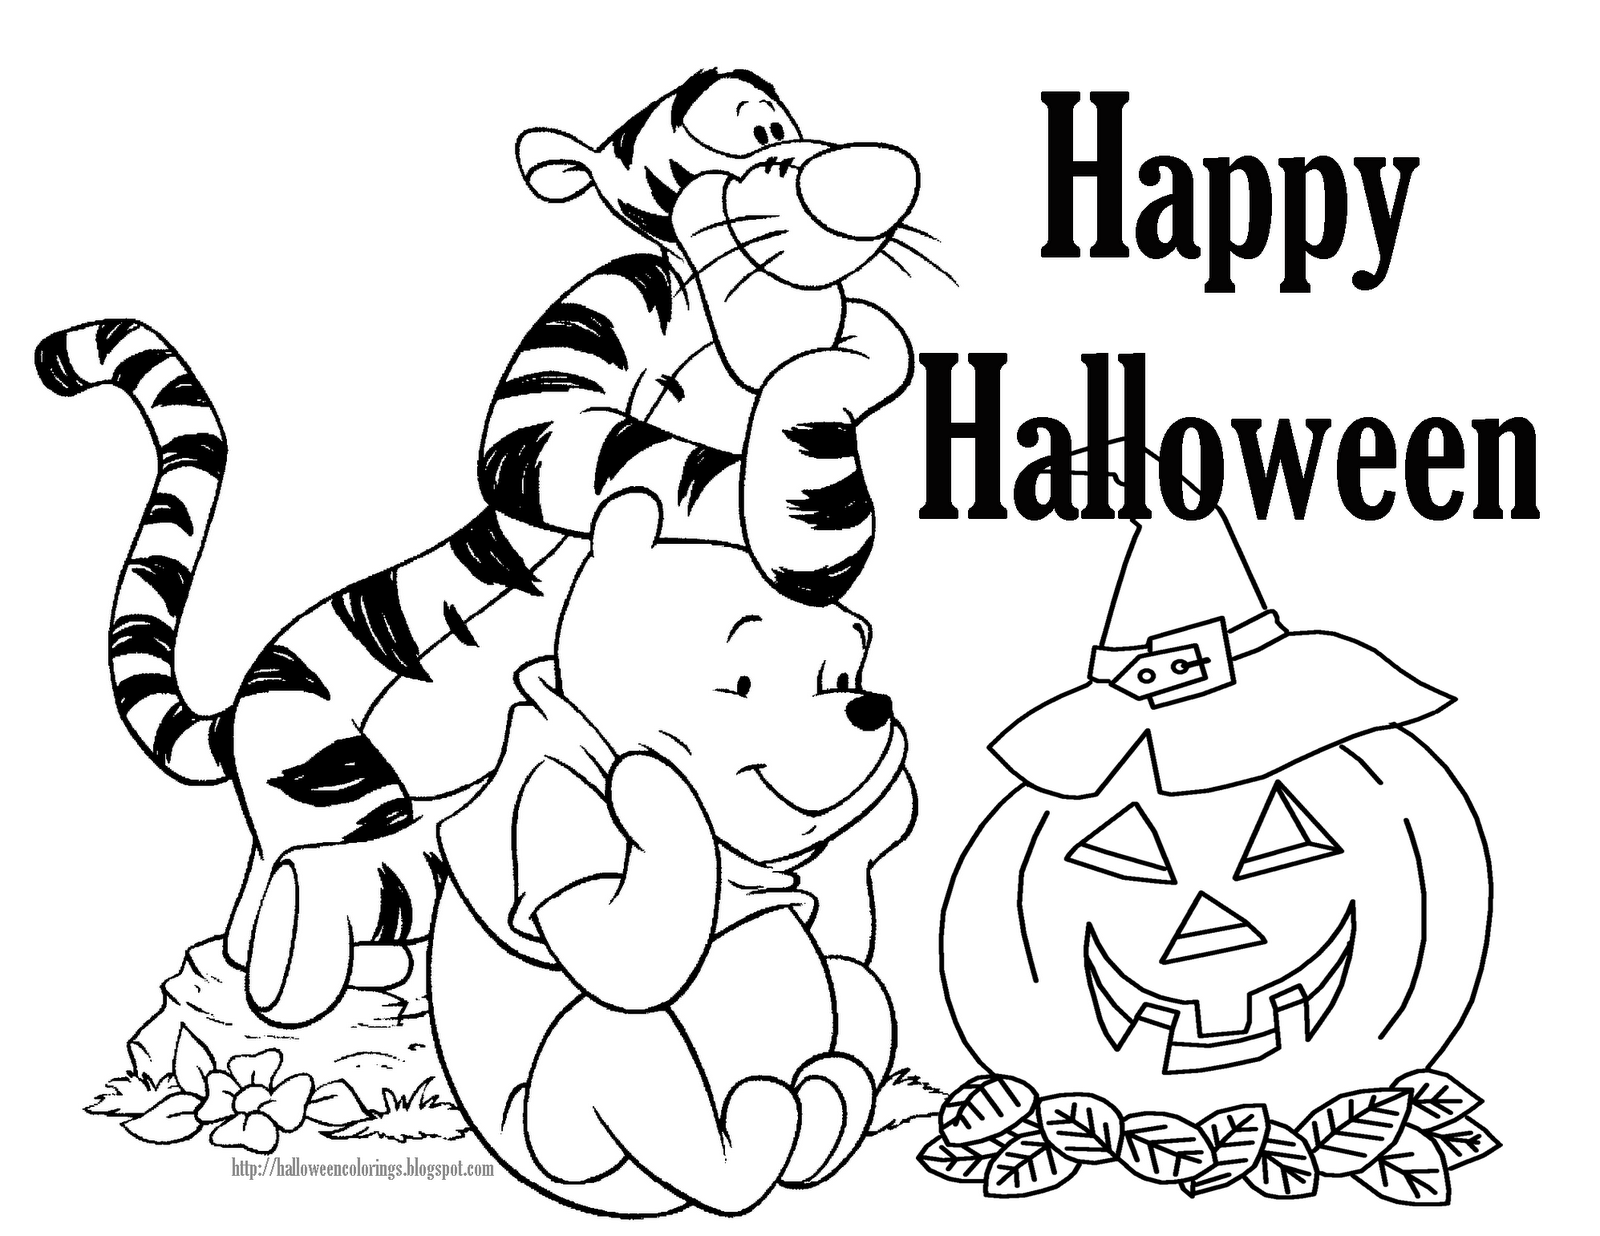 printable coloring pages halloween | Free Disney Halloween Coloring Pages - Lovebugs and Postcards